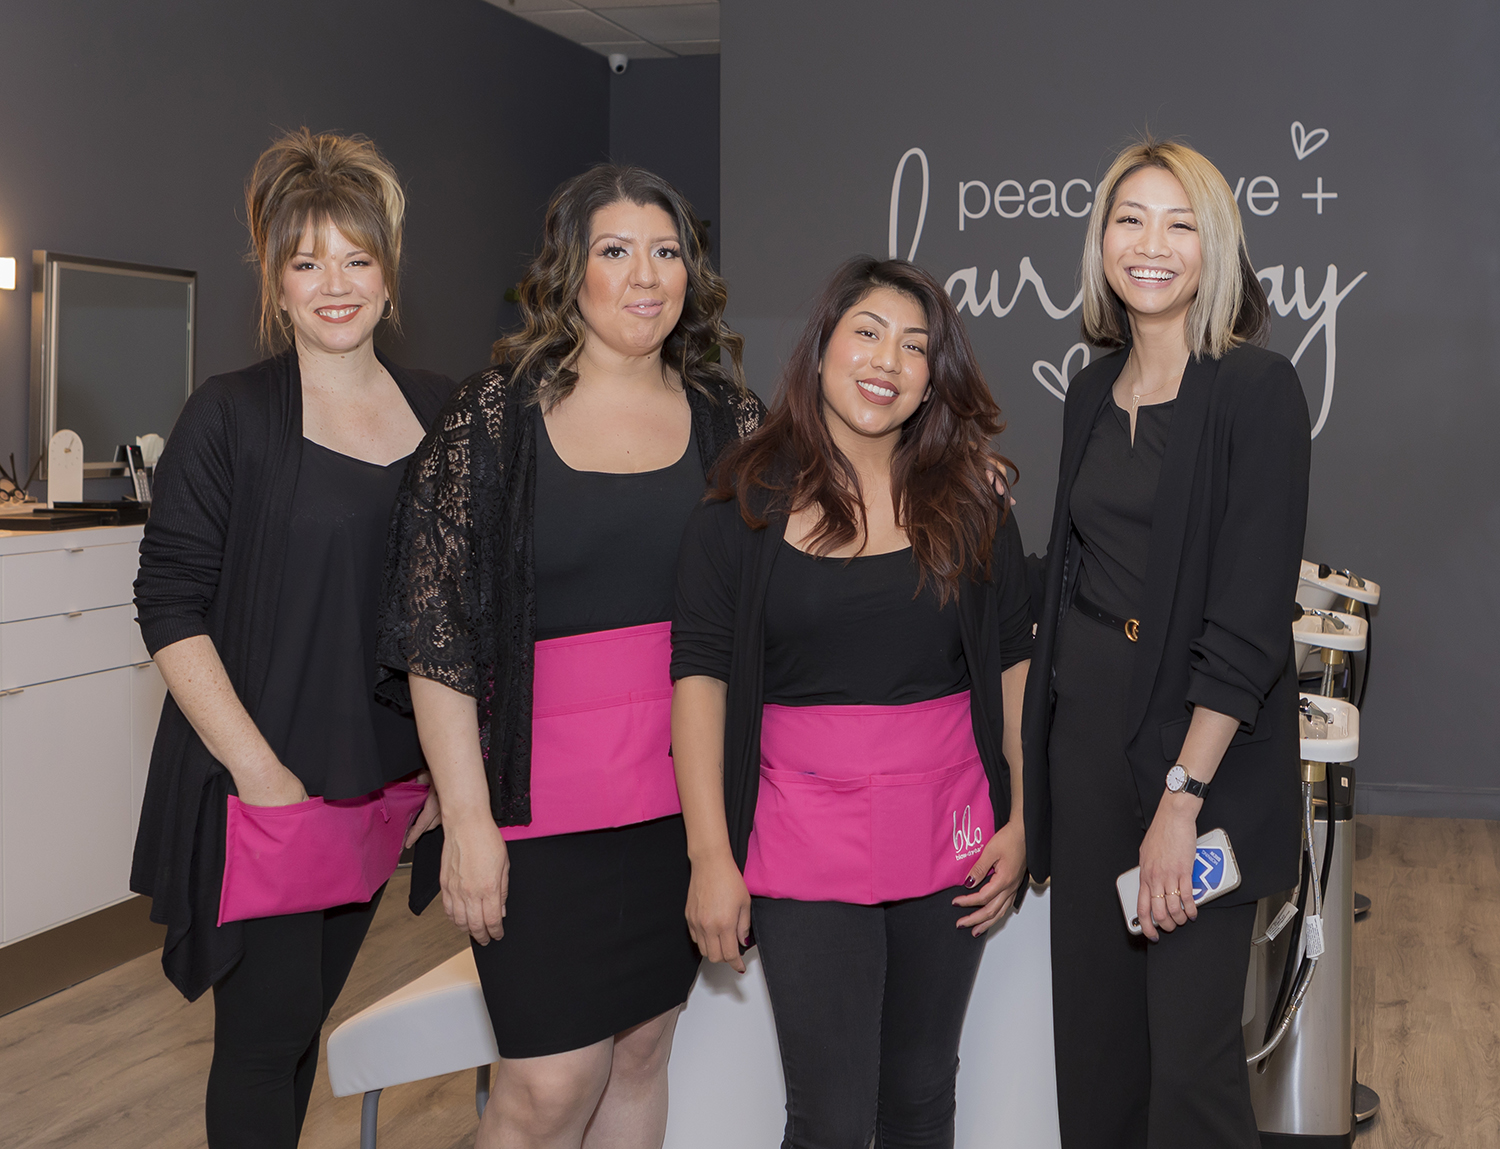 Blo Arcadia owner Helen Lin (far right) with members of her team.